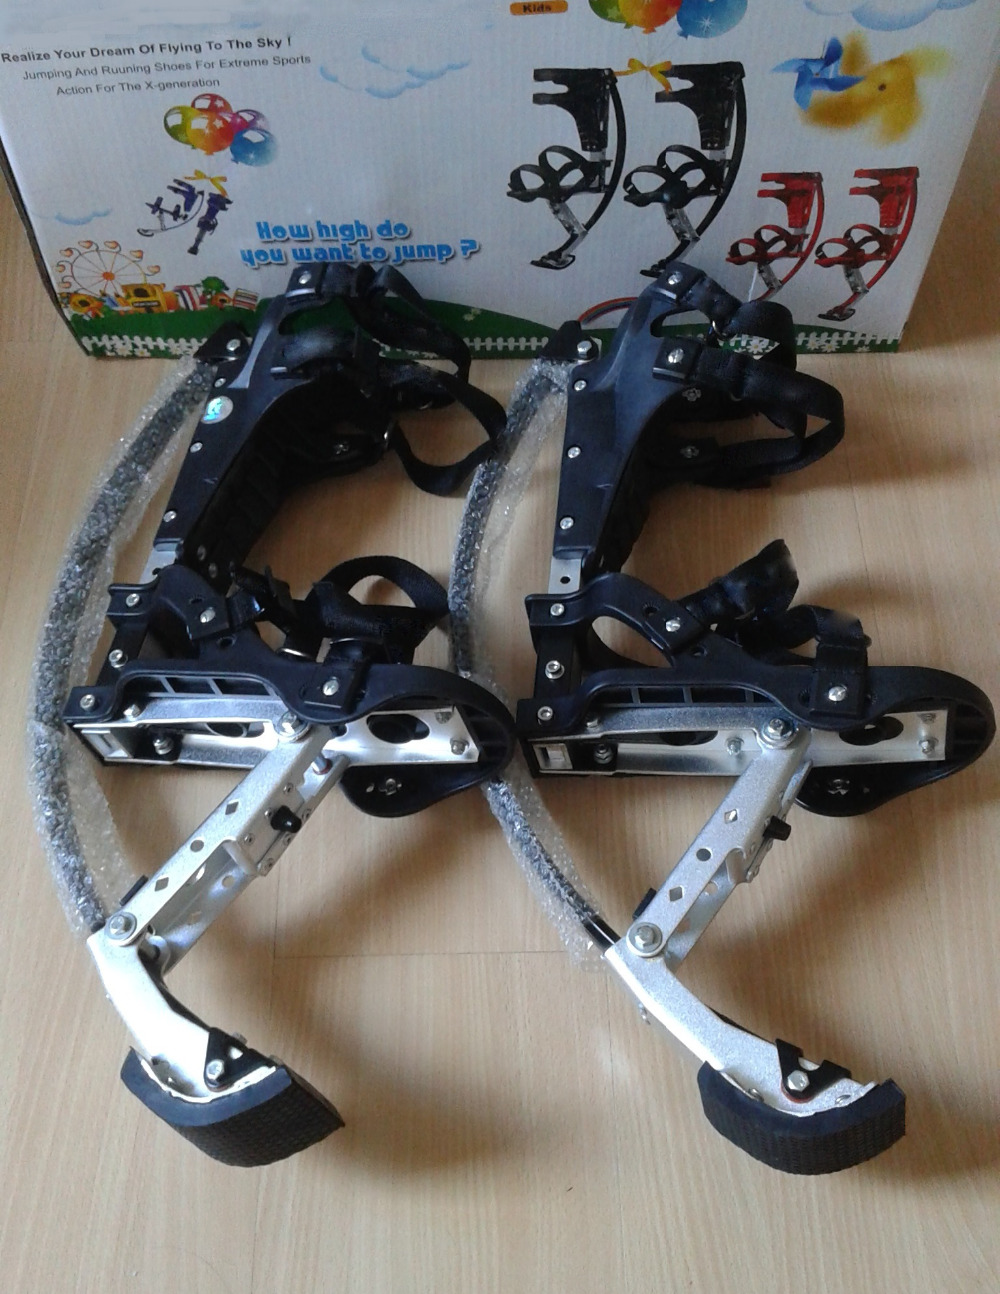 Skyrunner For People Weight 44lbs~88lbs/20kg~40kg Black Jumping Stilts/skyrunner/Jump Shoes/Flying Shoes